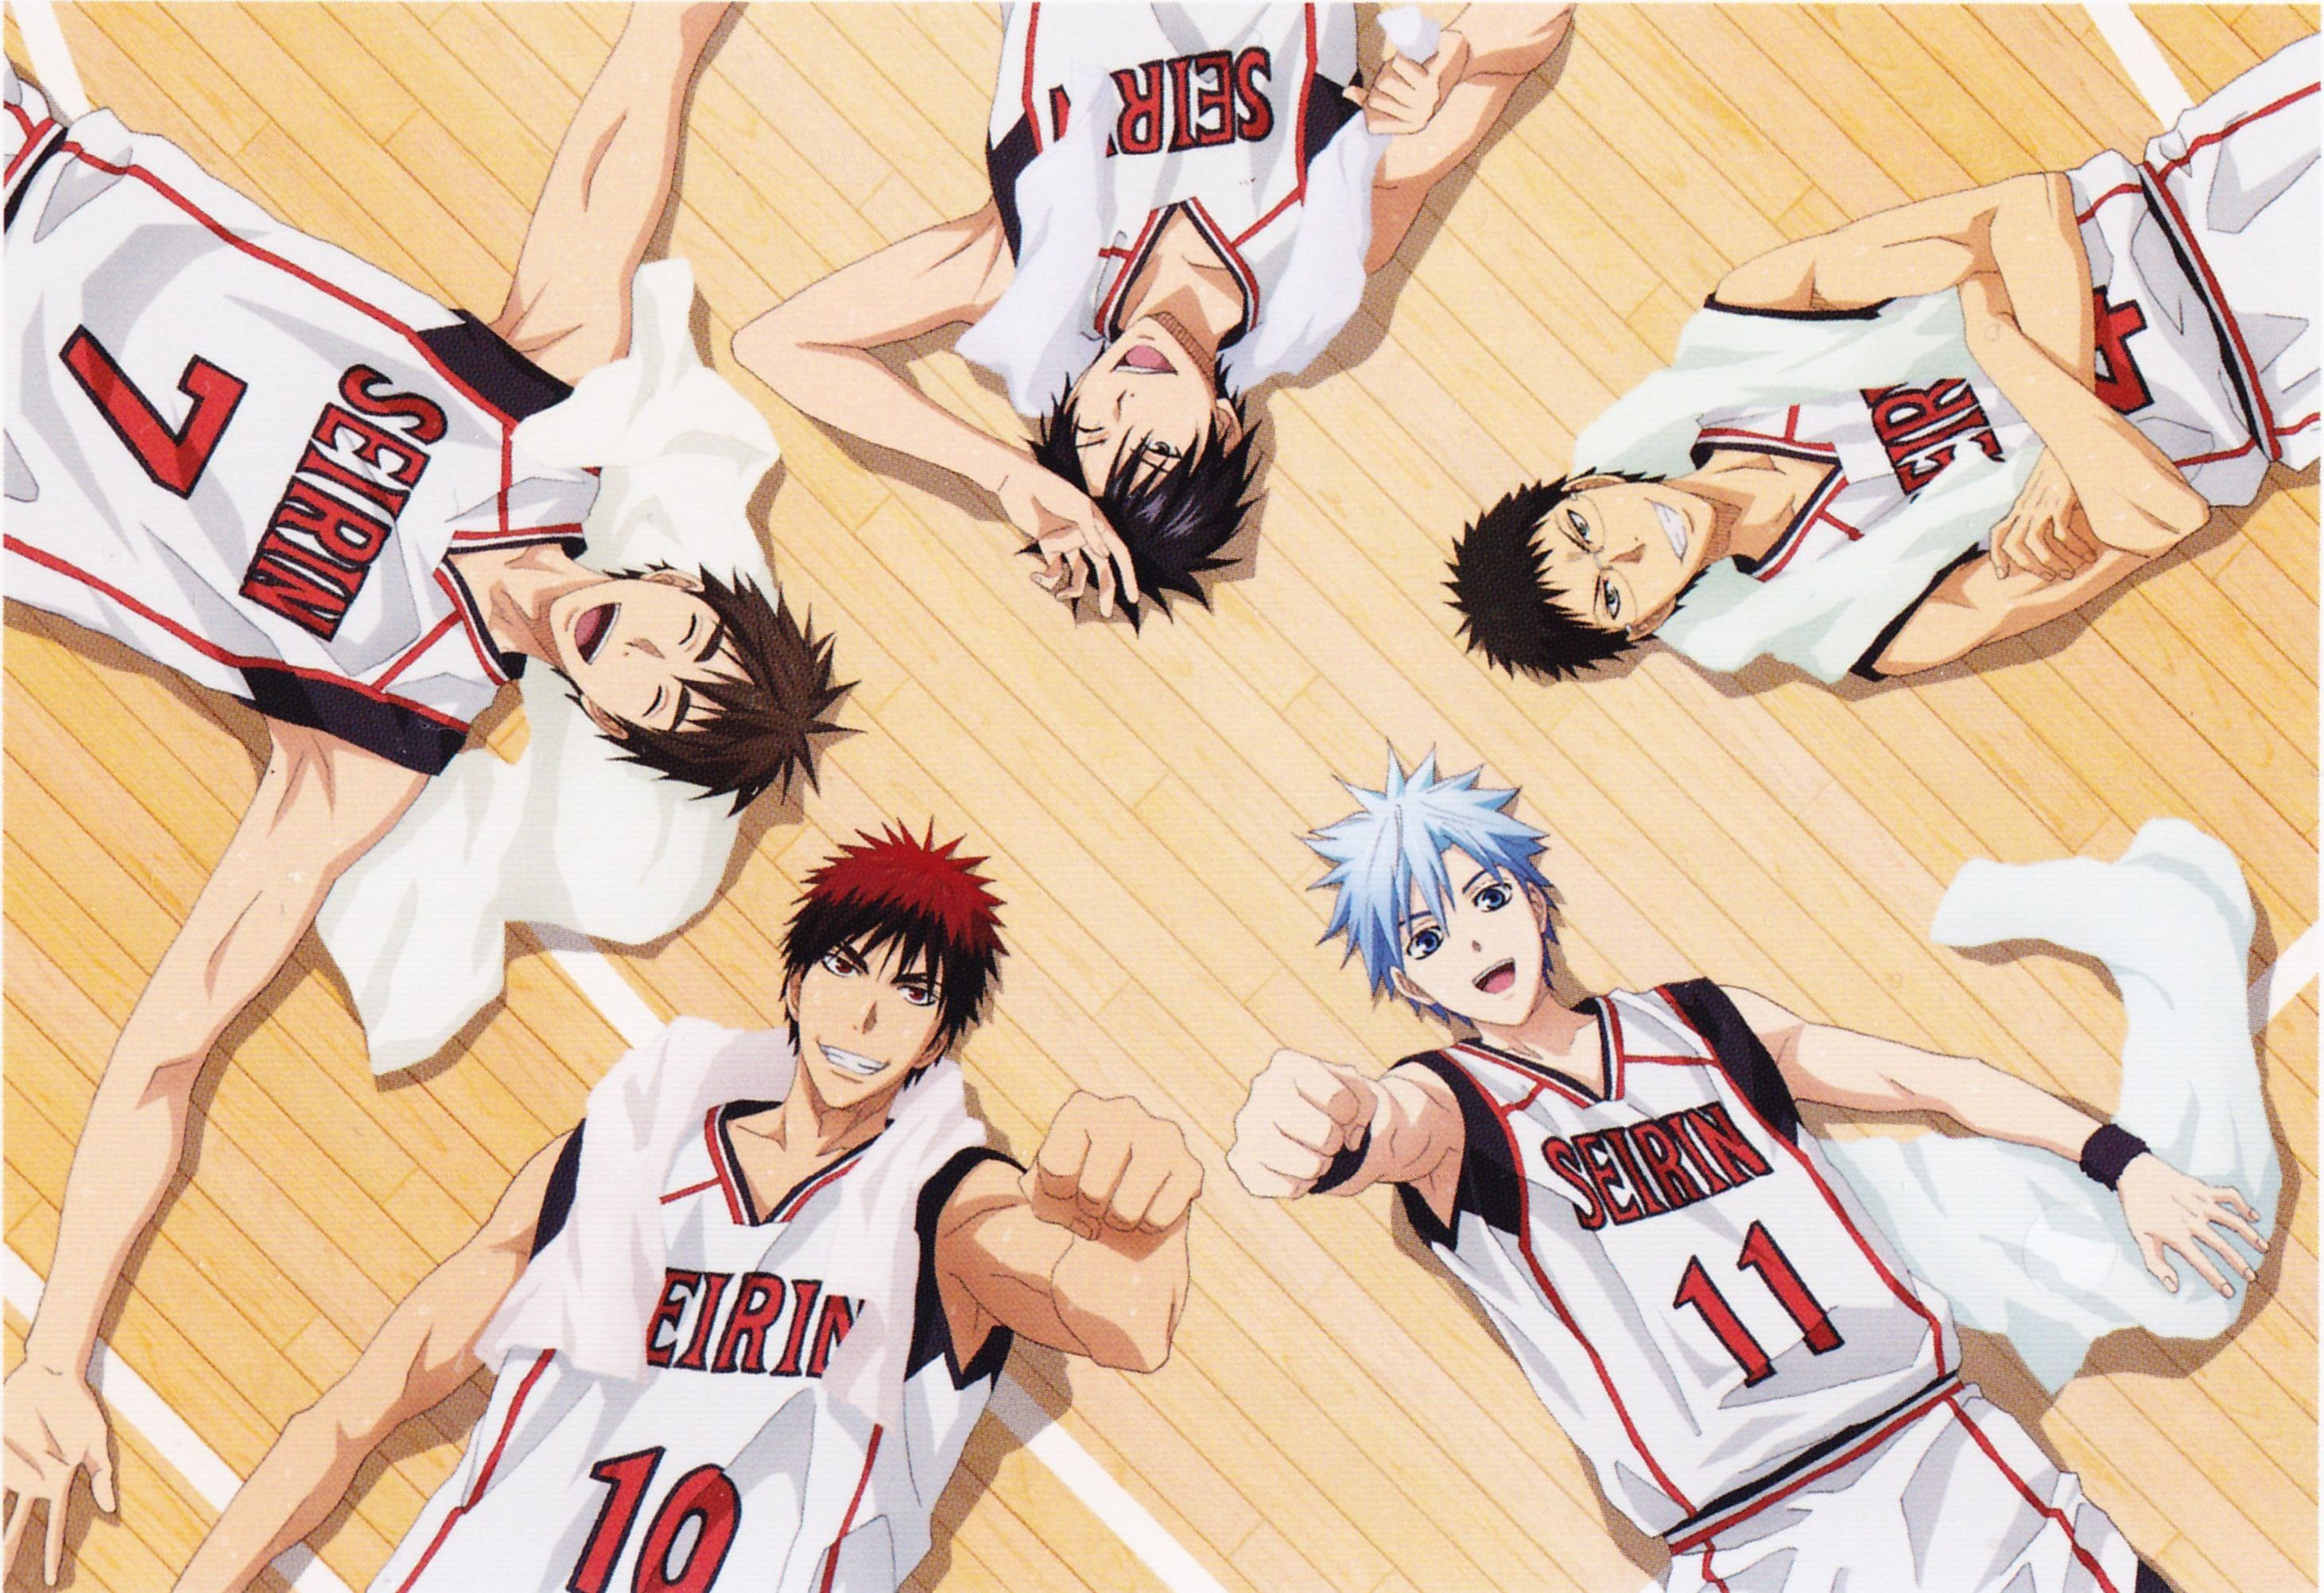 Kuroko and kagami wallpaper picture tjy awesomeness pinterest kuroko and kagami wallpaper picture tjy voltagebd Gallery